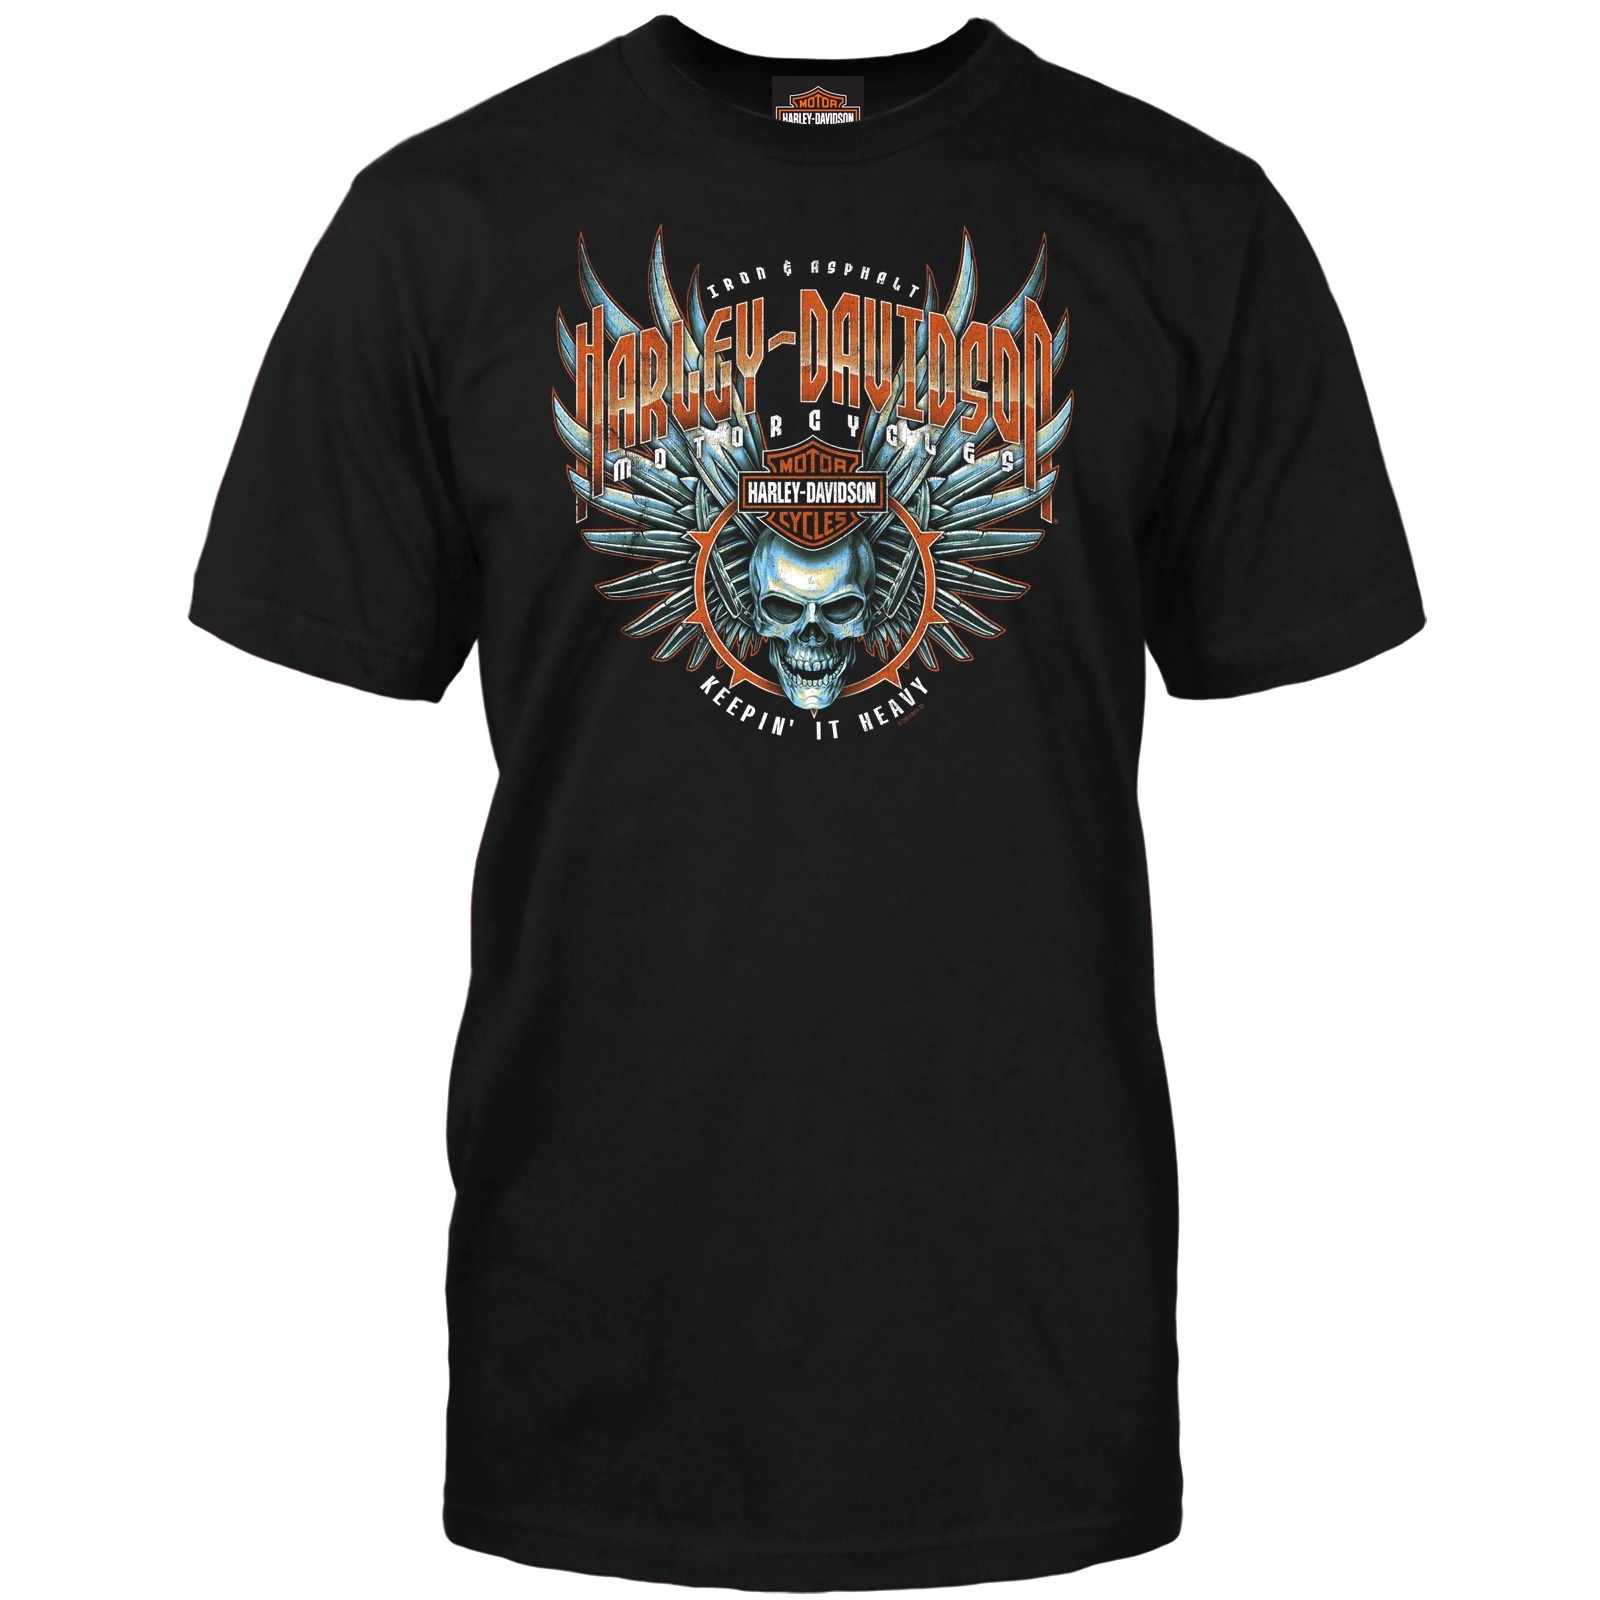 Harley-Davidson Men's Graphic Short-Sleeve Tee - Baghdad | Keep It Heavy